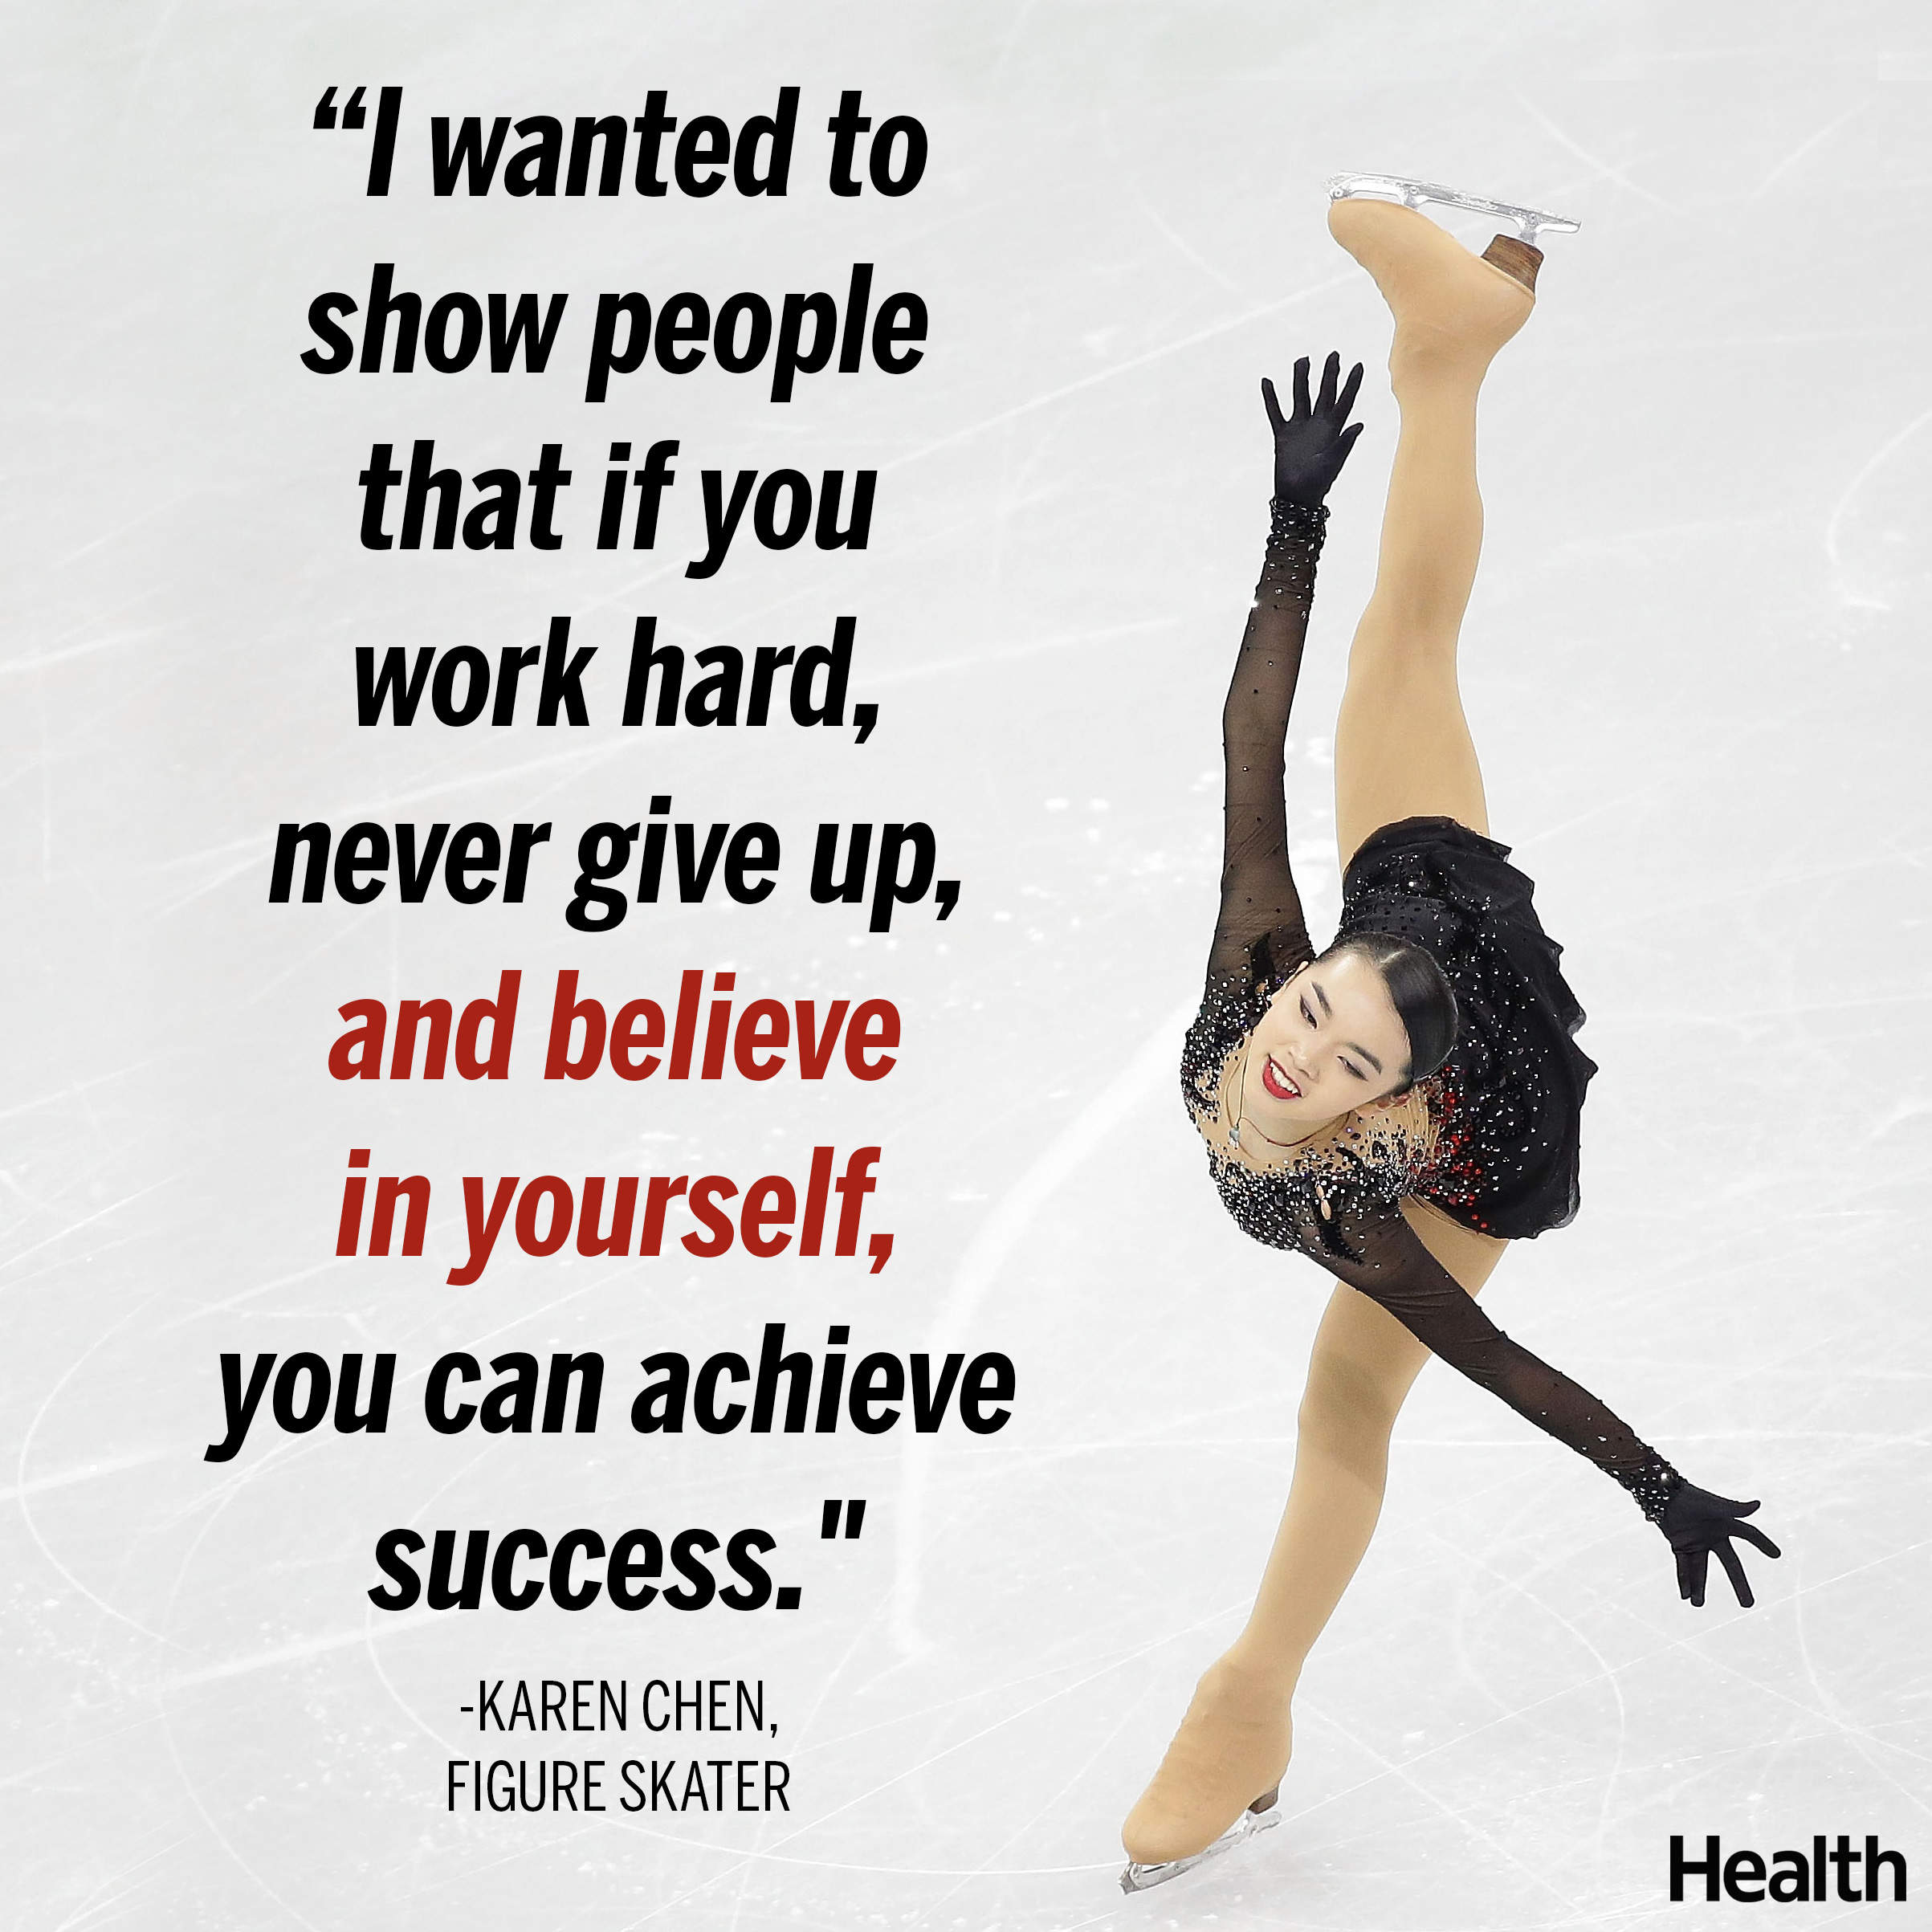 Karen Chen Is An 18 Year Old Figure Skater From Fremont, California. She  Was A U.S. National Bronze Medalist In 2015 And The 2017 U.S. National  Champion.